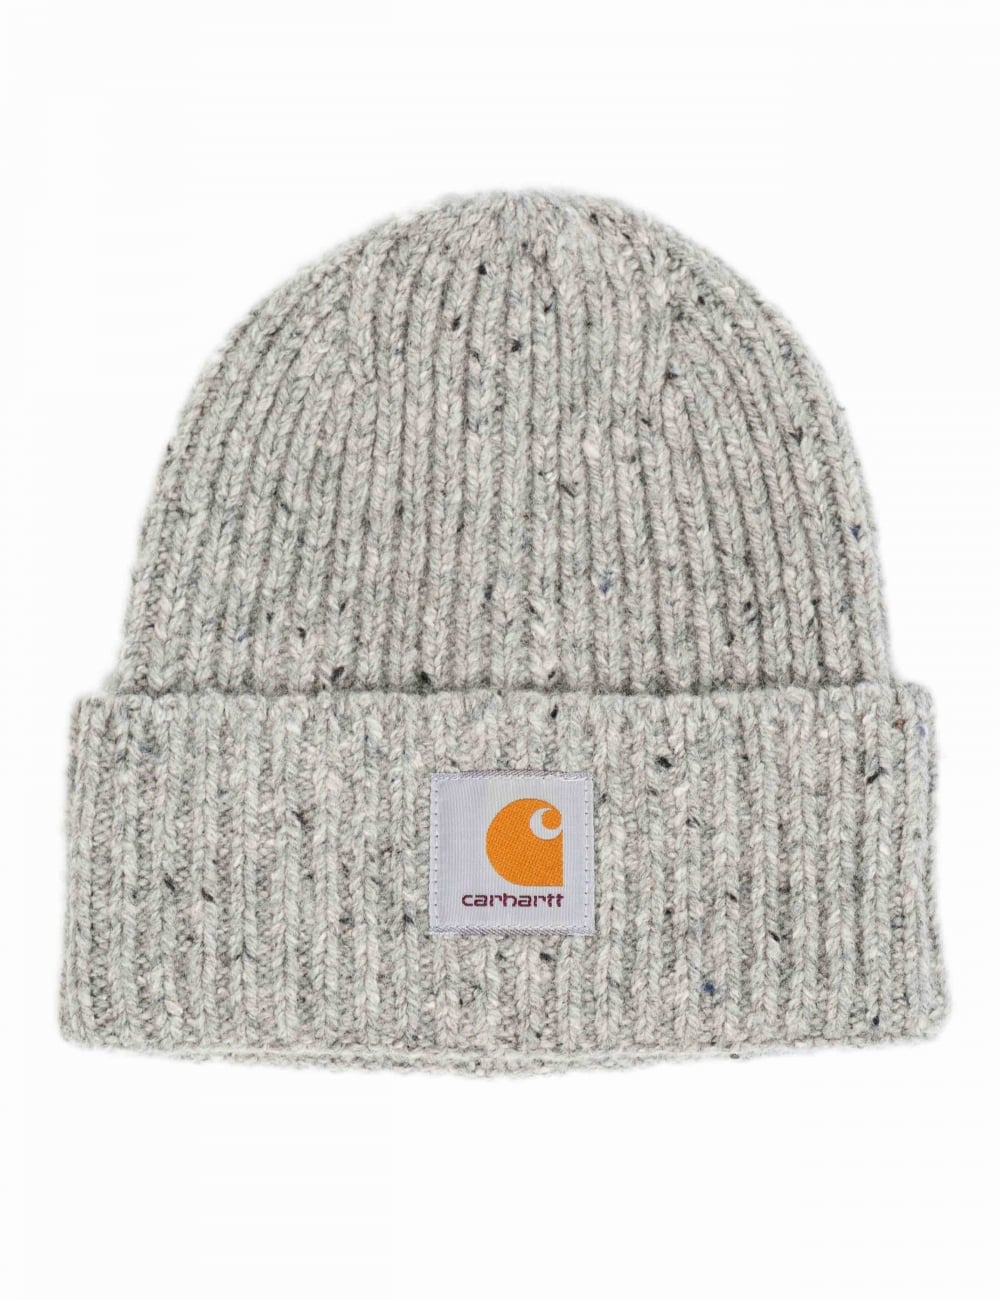 Carhartt WIP Anglistic Beanie Hat - Heather Grey - Accessories from ... b3f34c3e9da